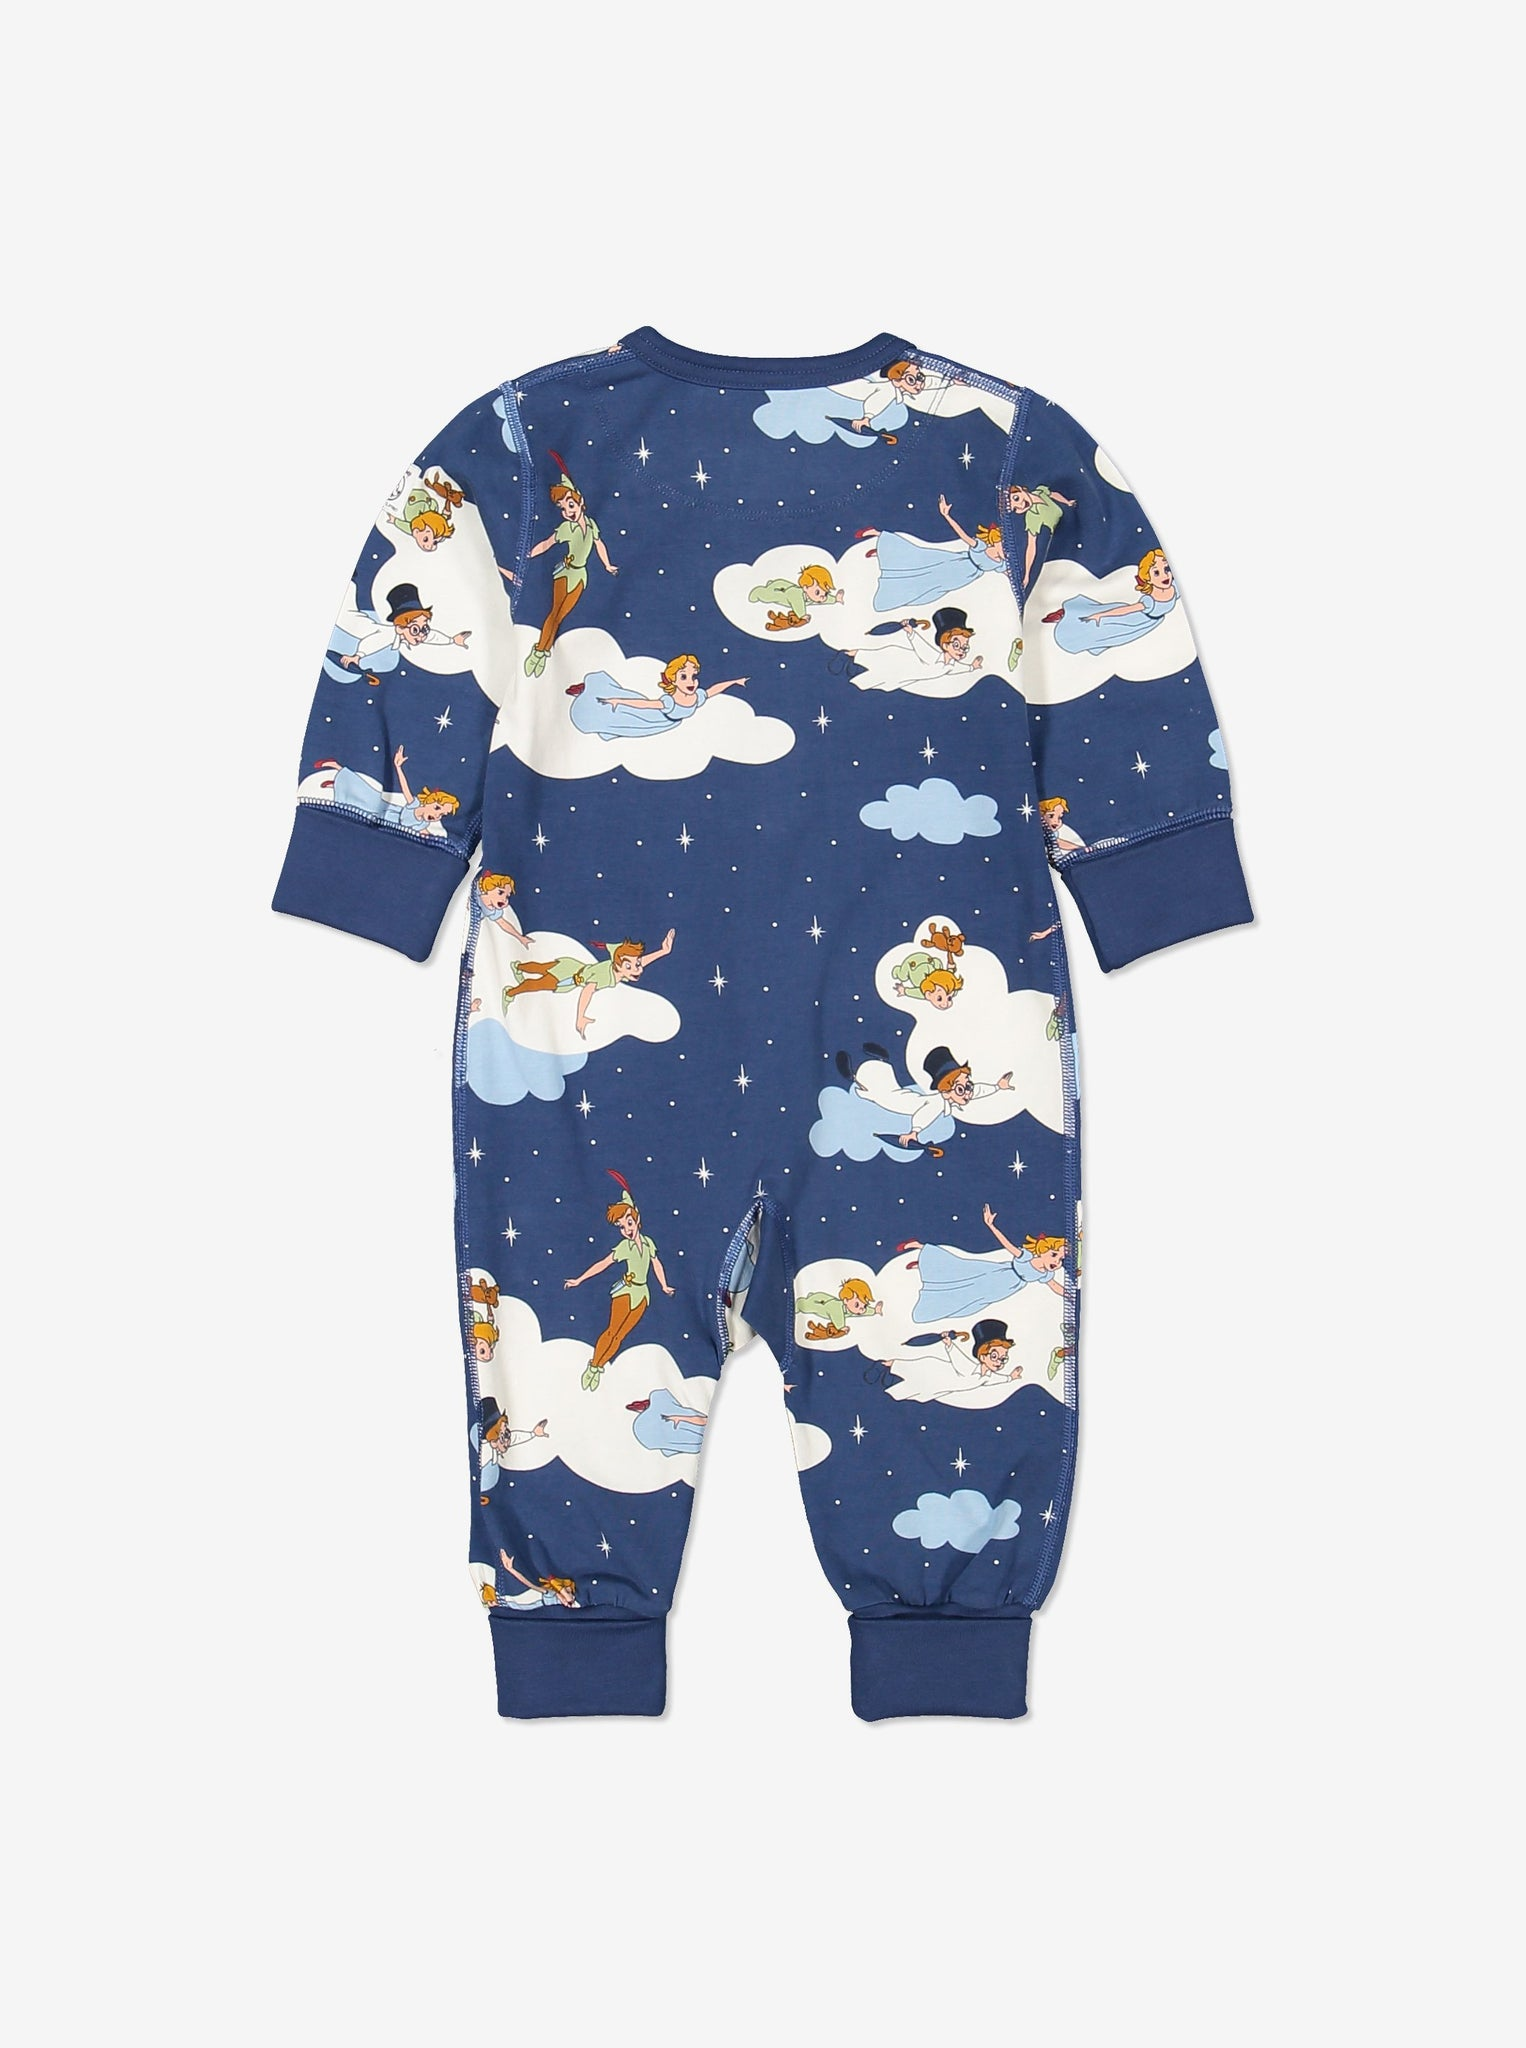 Kids Organic Cotton Peter Pan Onesie 0-4years Blue Unisex